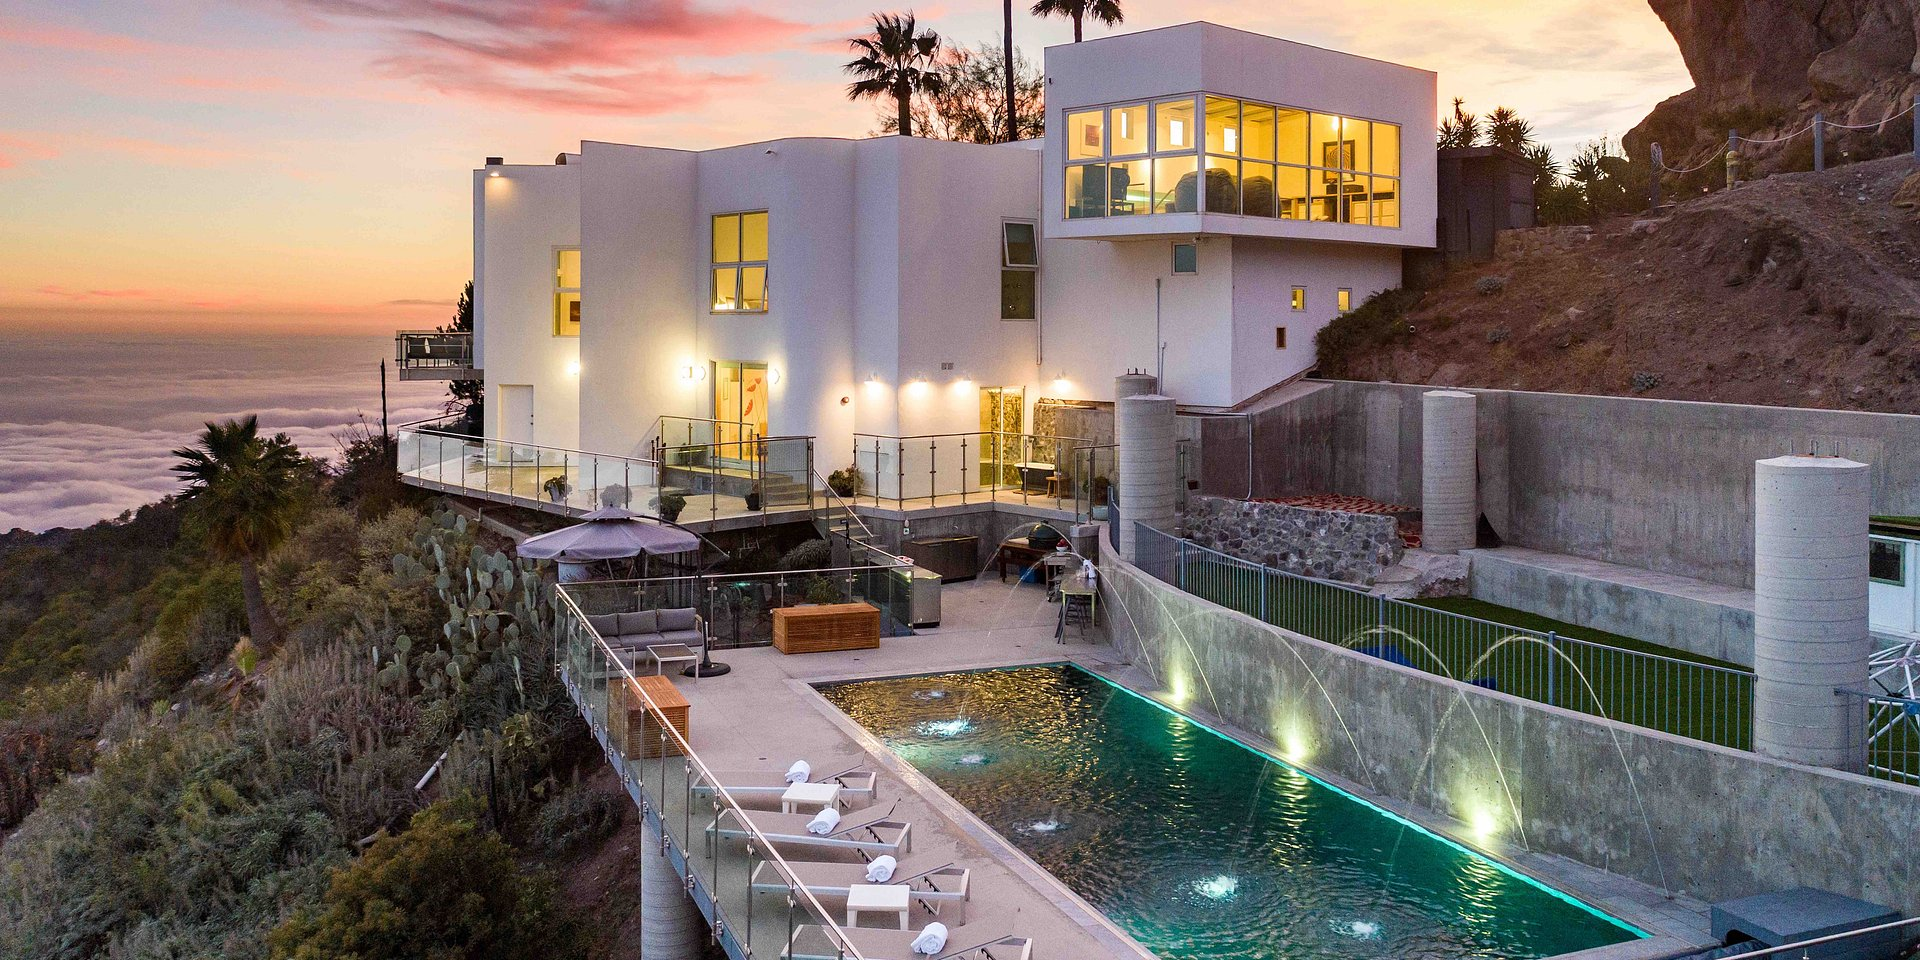 Coldwell Banker Residential Brokerage Lists Malibu Property for $3.5 Million